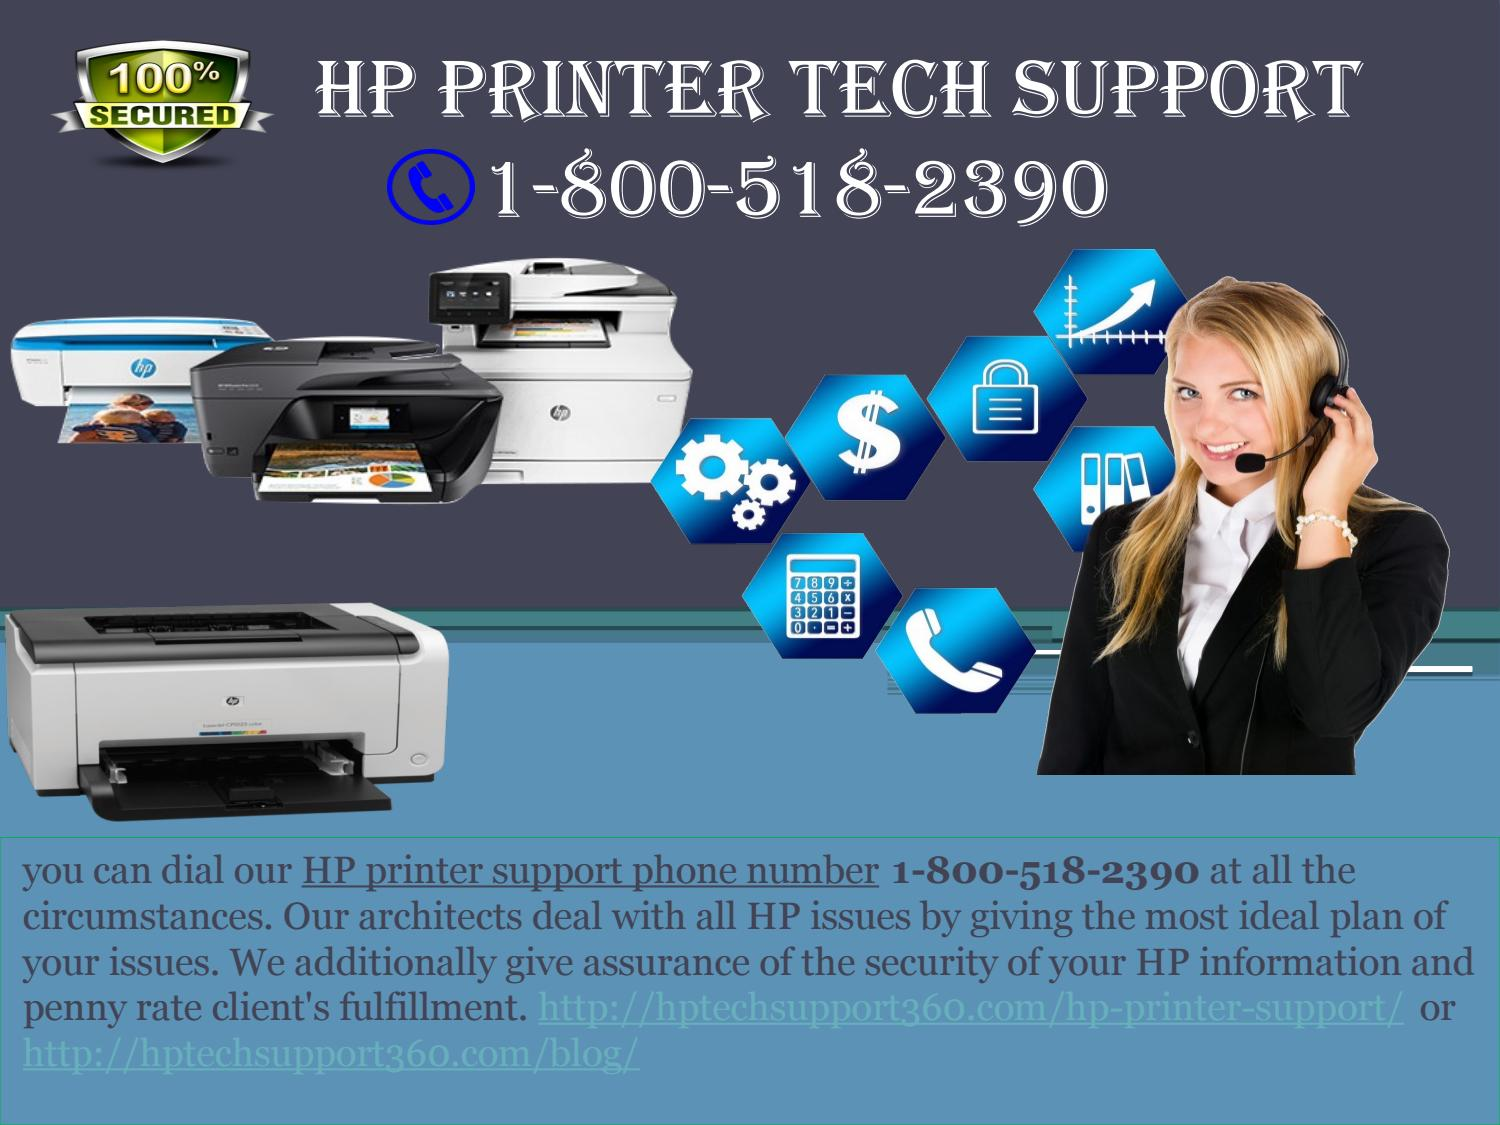 Acquire HP printer technical support 1-800-518-2390 To